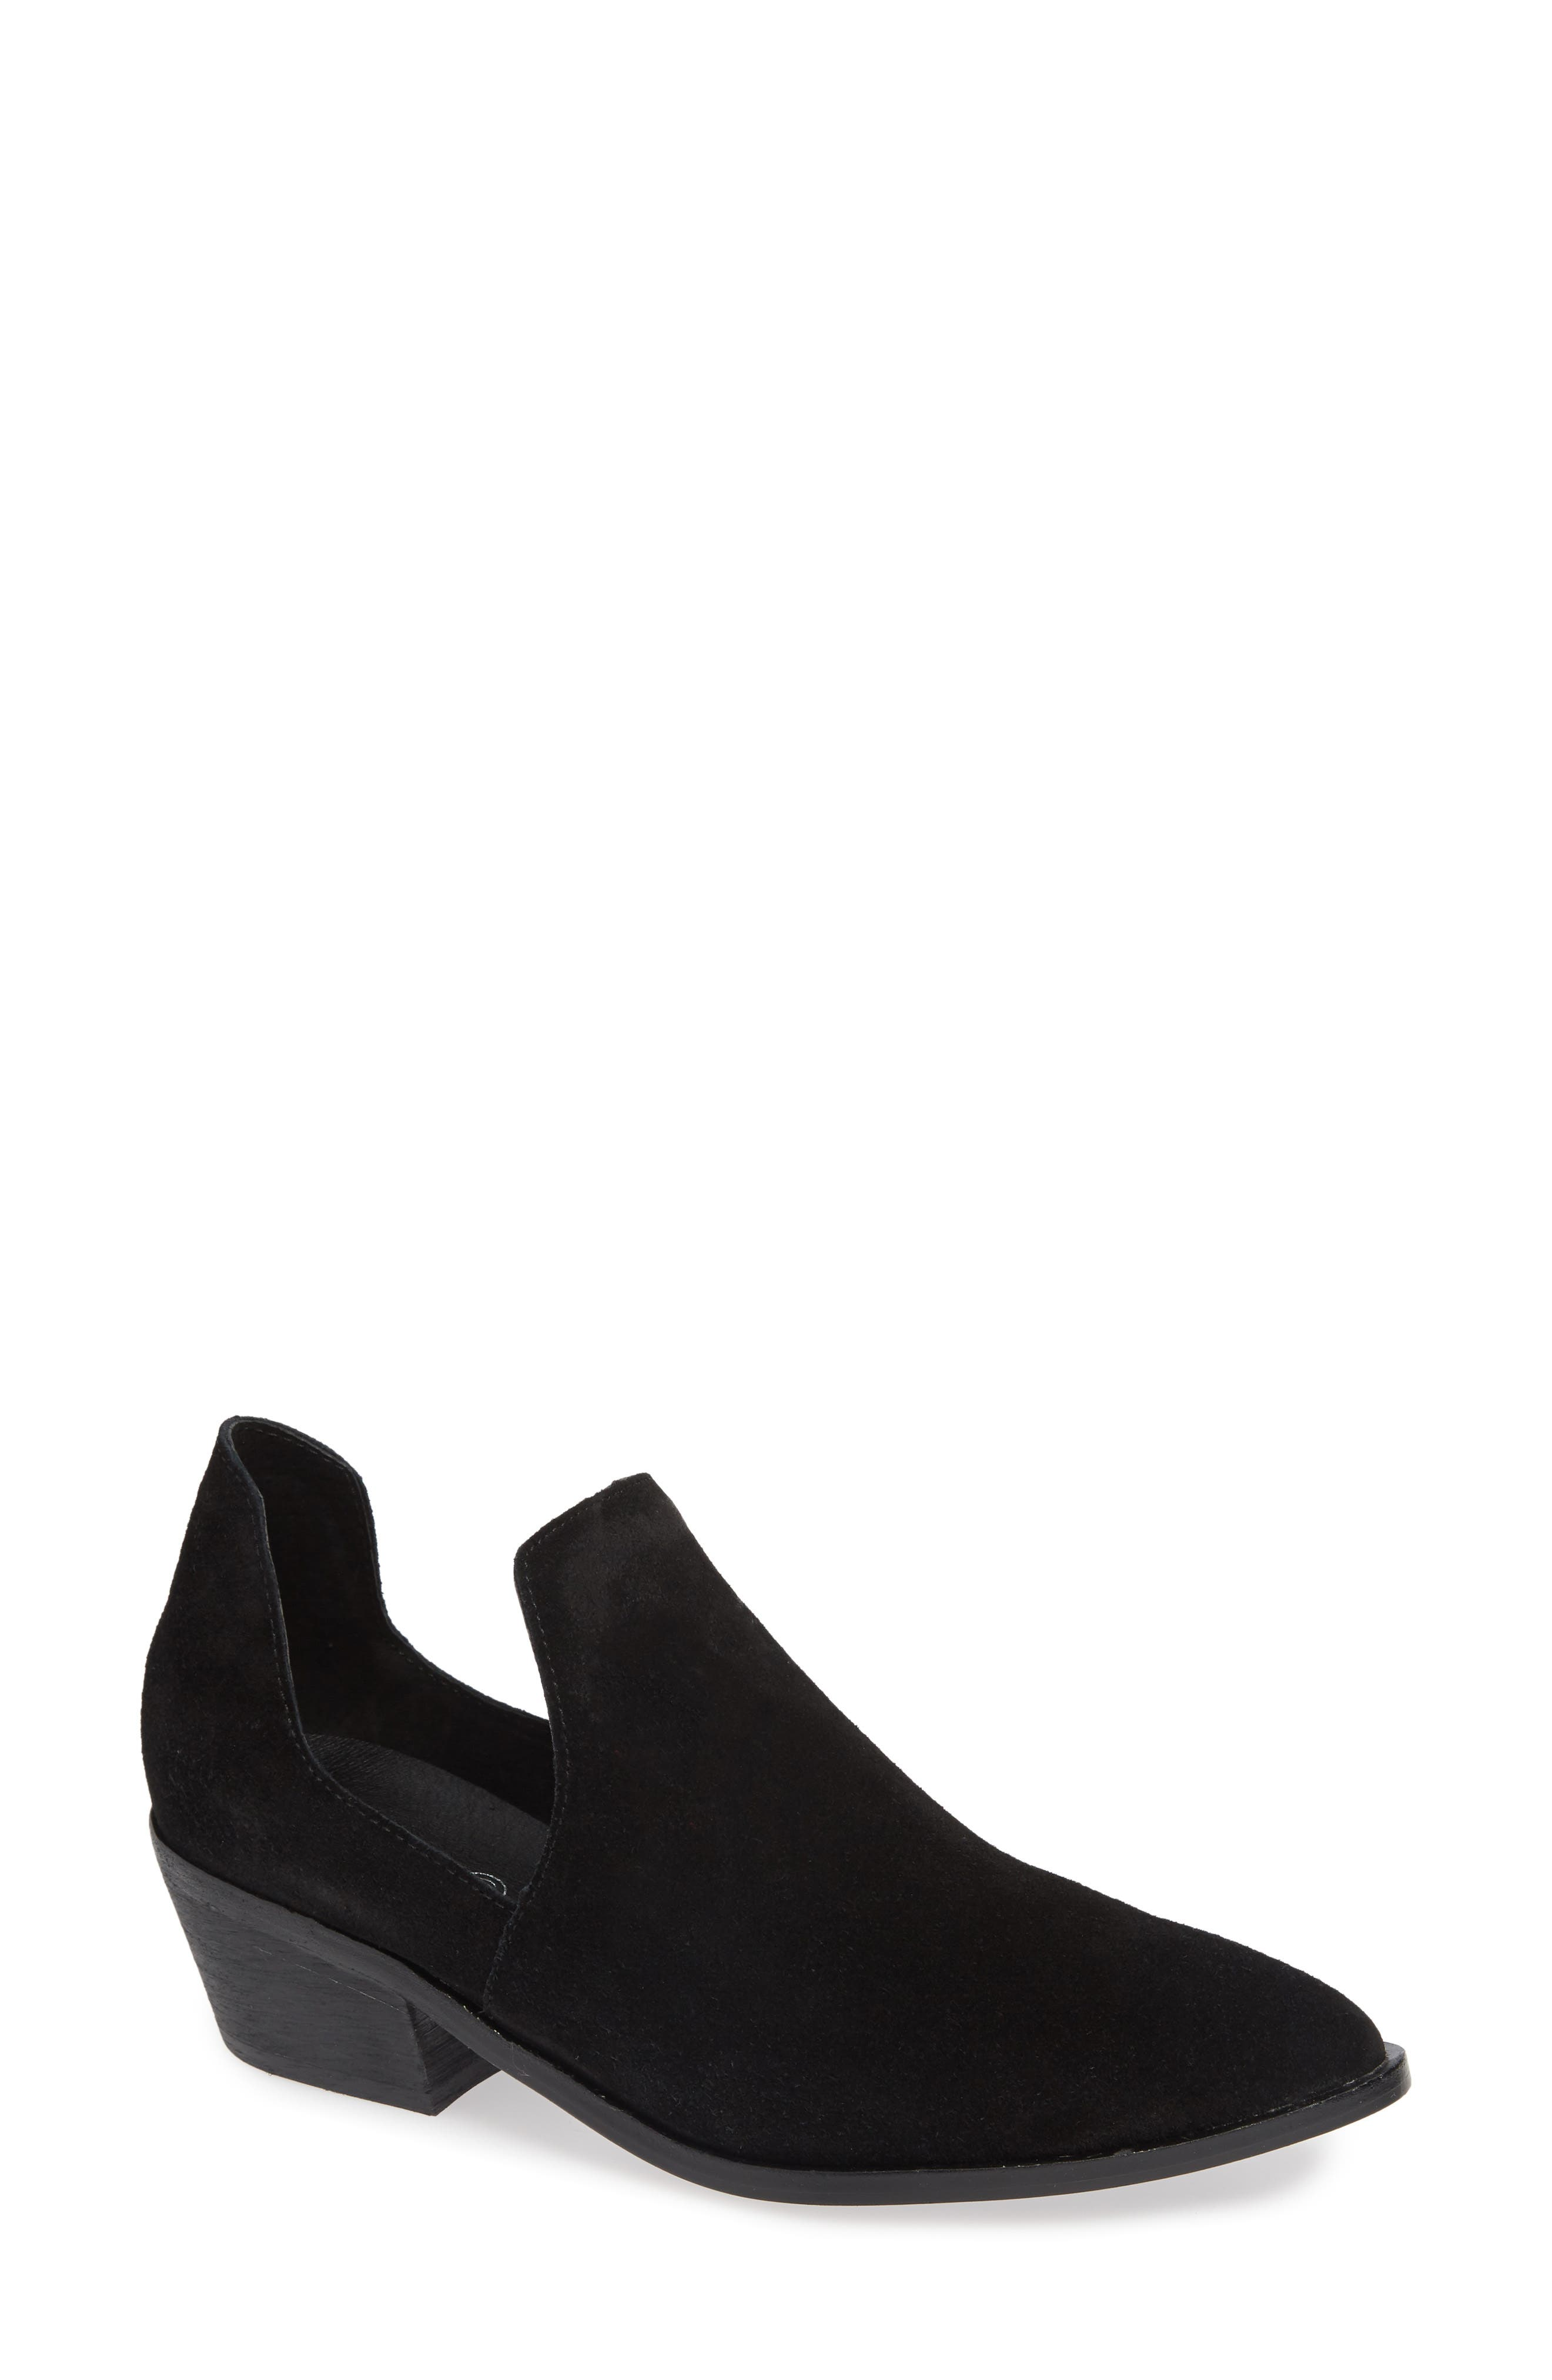 Chinese Laundry Focus Open Sided Bootie, Black